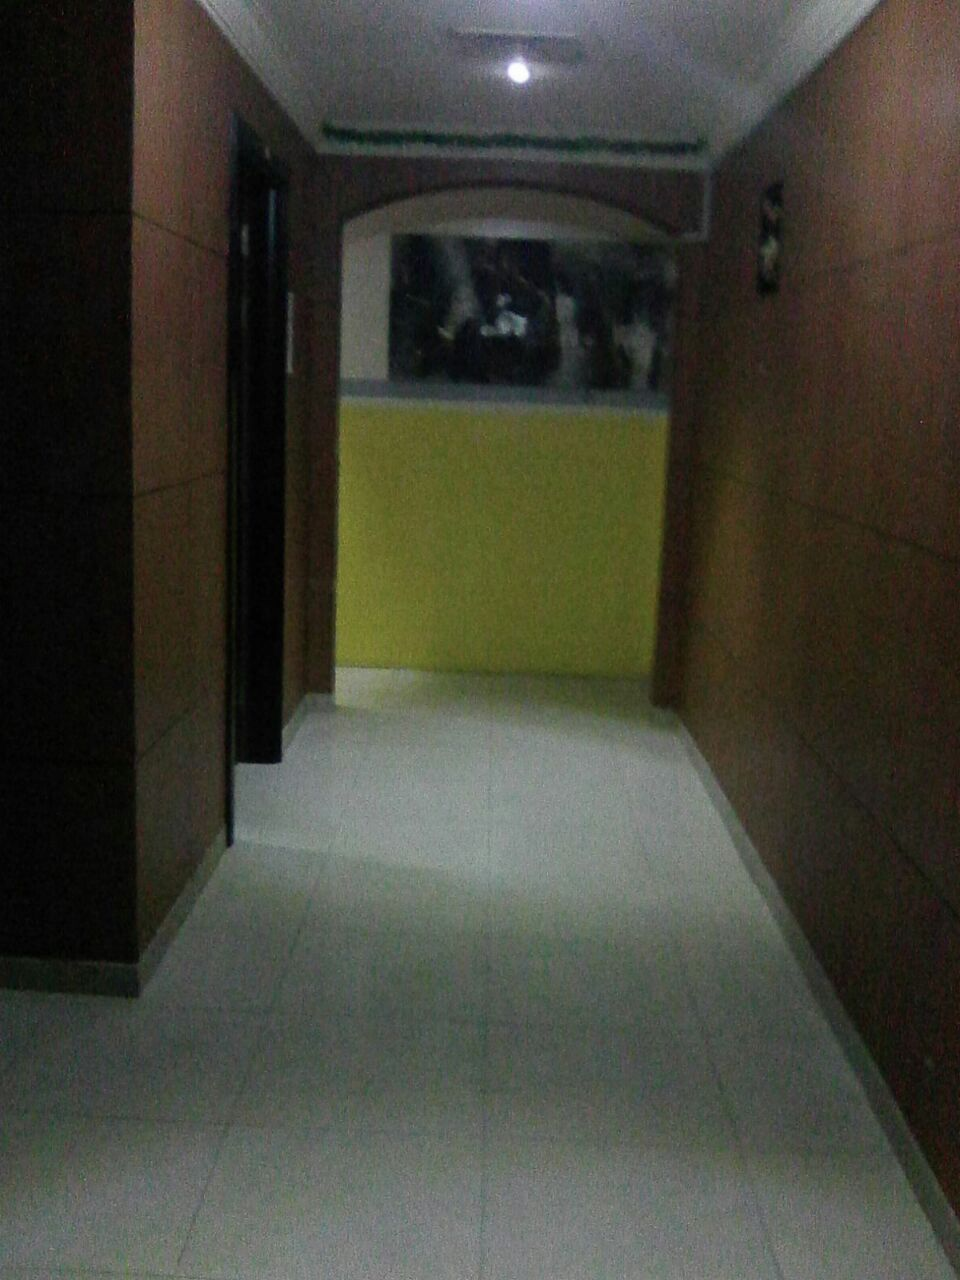 All Inclusive Affordable Partition Rooms near Metro and Bus Station in Bur Dubai